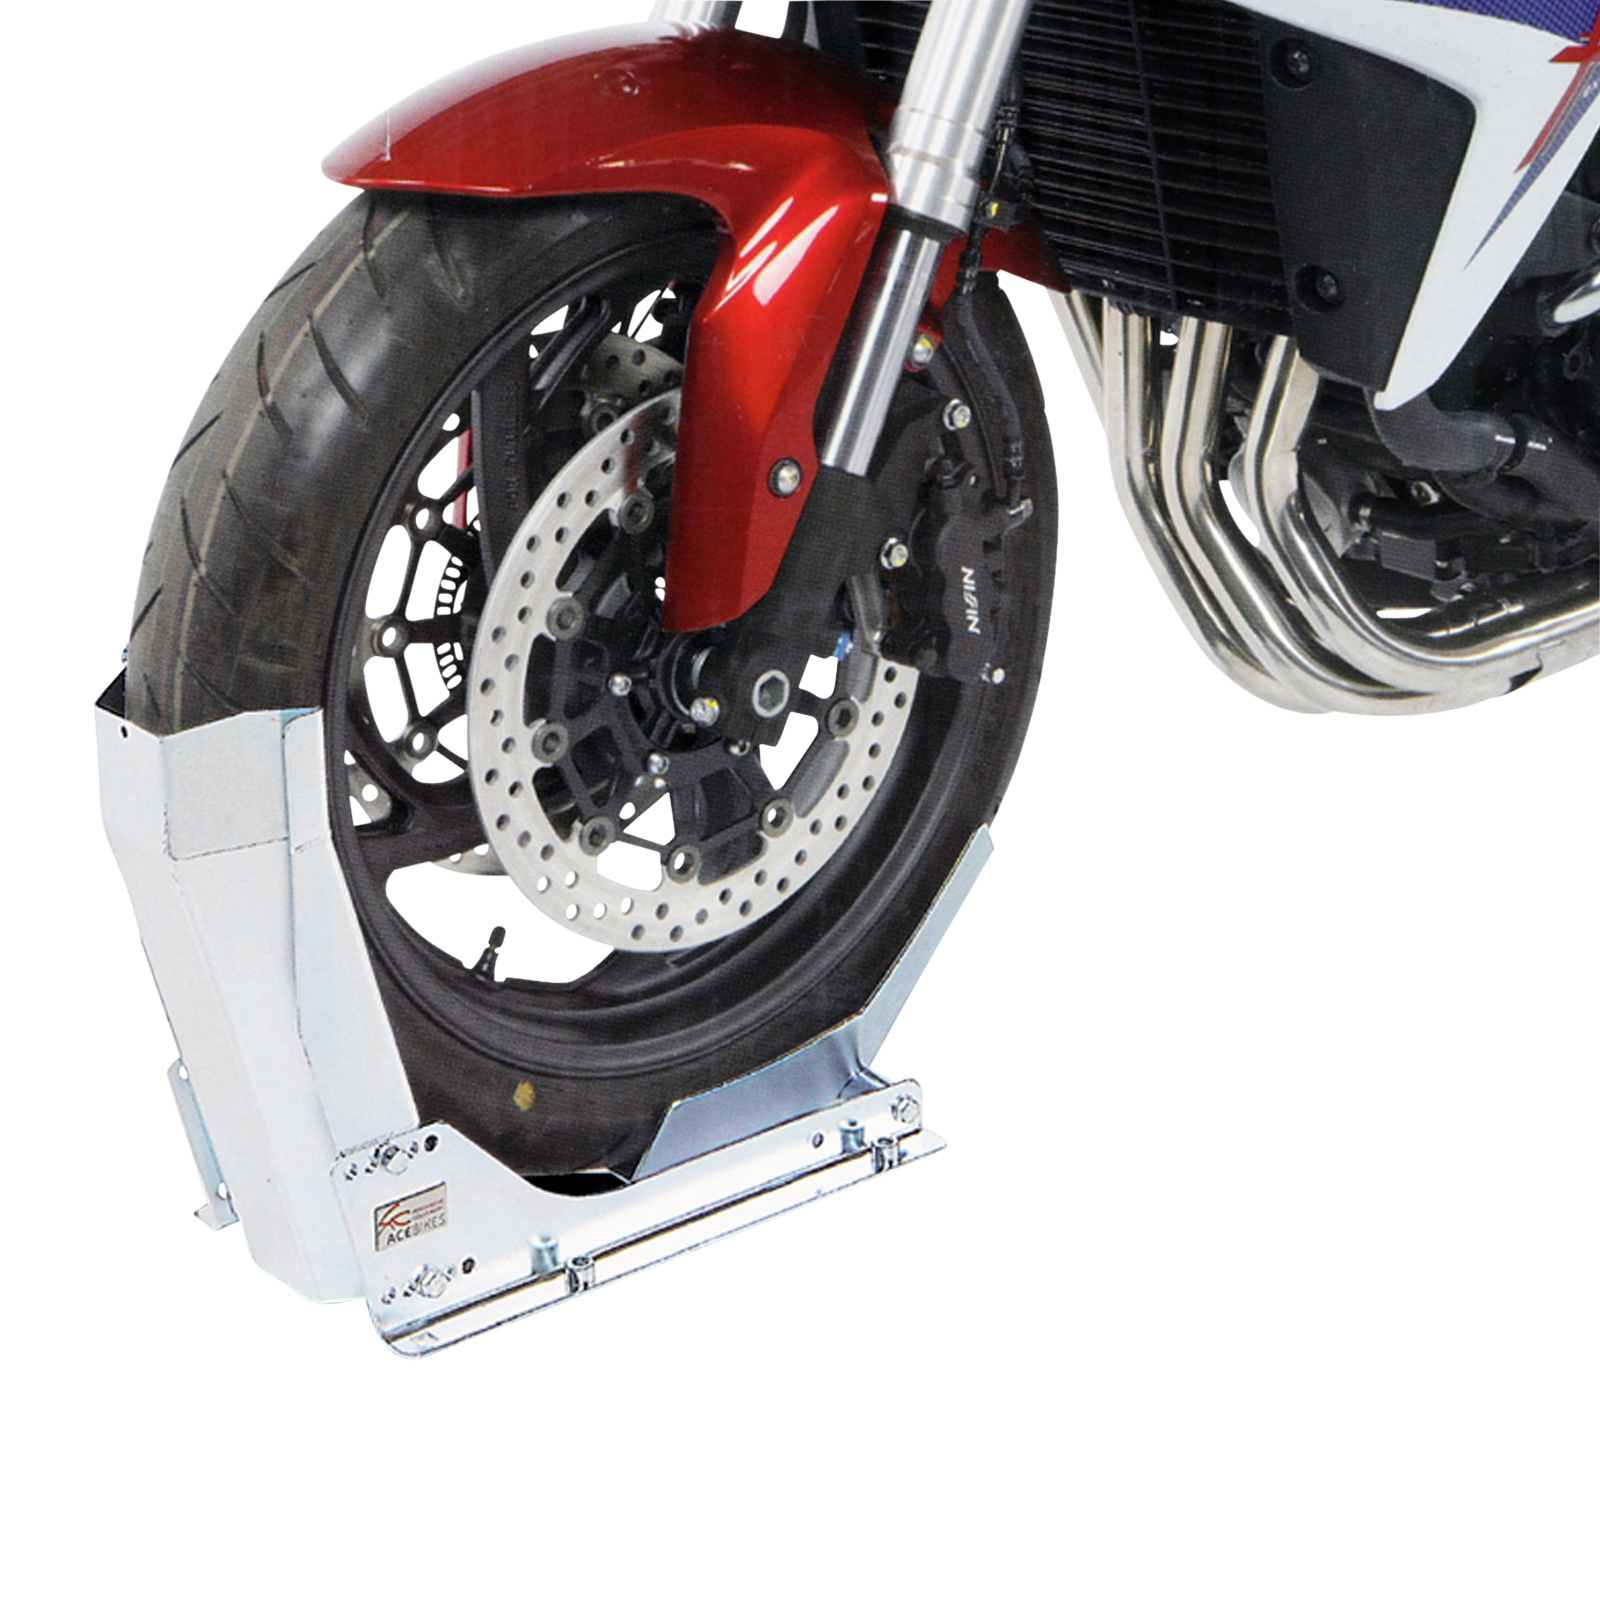 ace bikes steadystand fixed modell 152 motorrad wippe 10. Black Bedroom Furniture Sets. Home Design Ideas